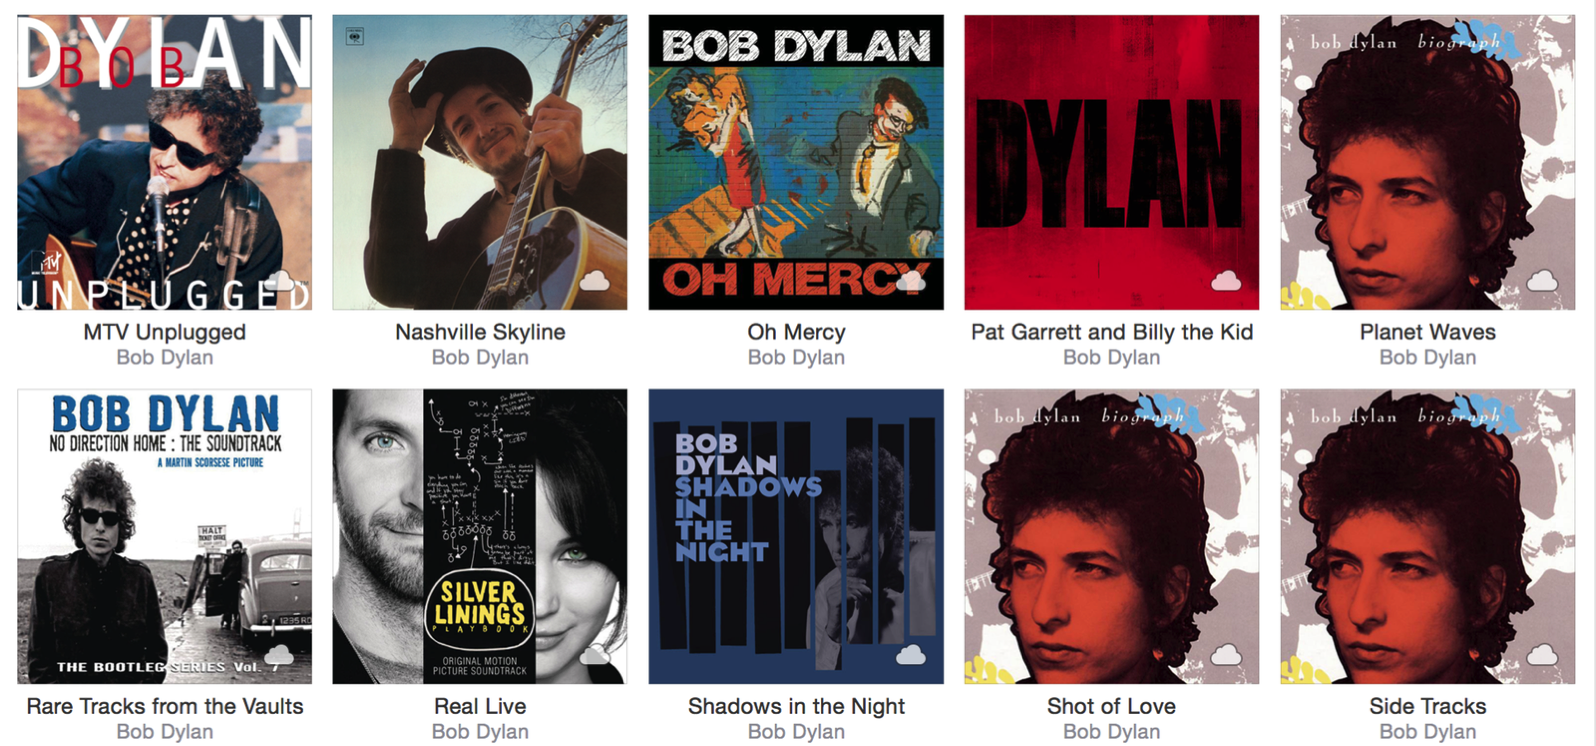 how to delete an album from icloud music library